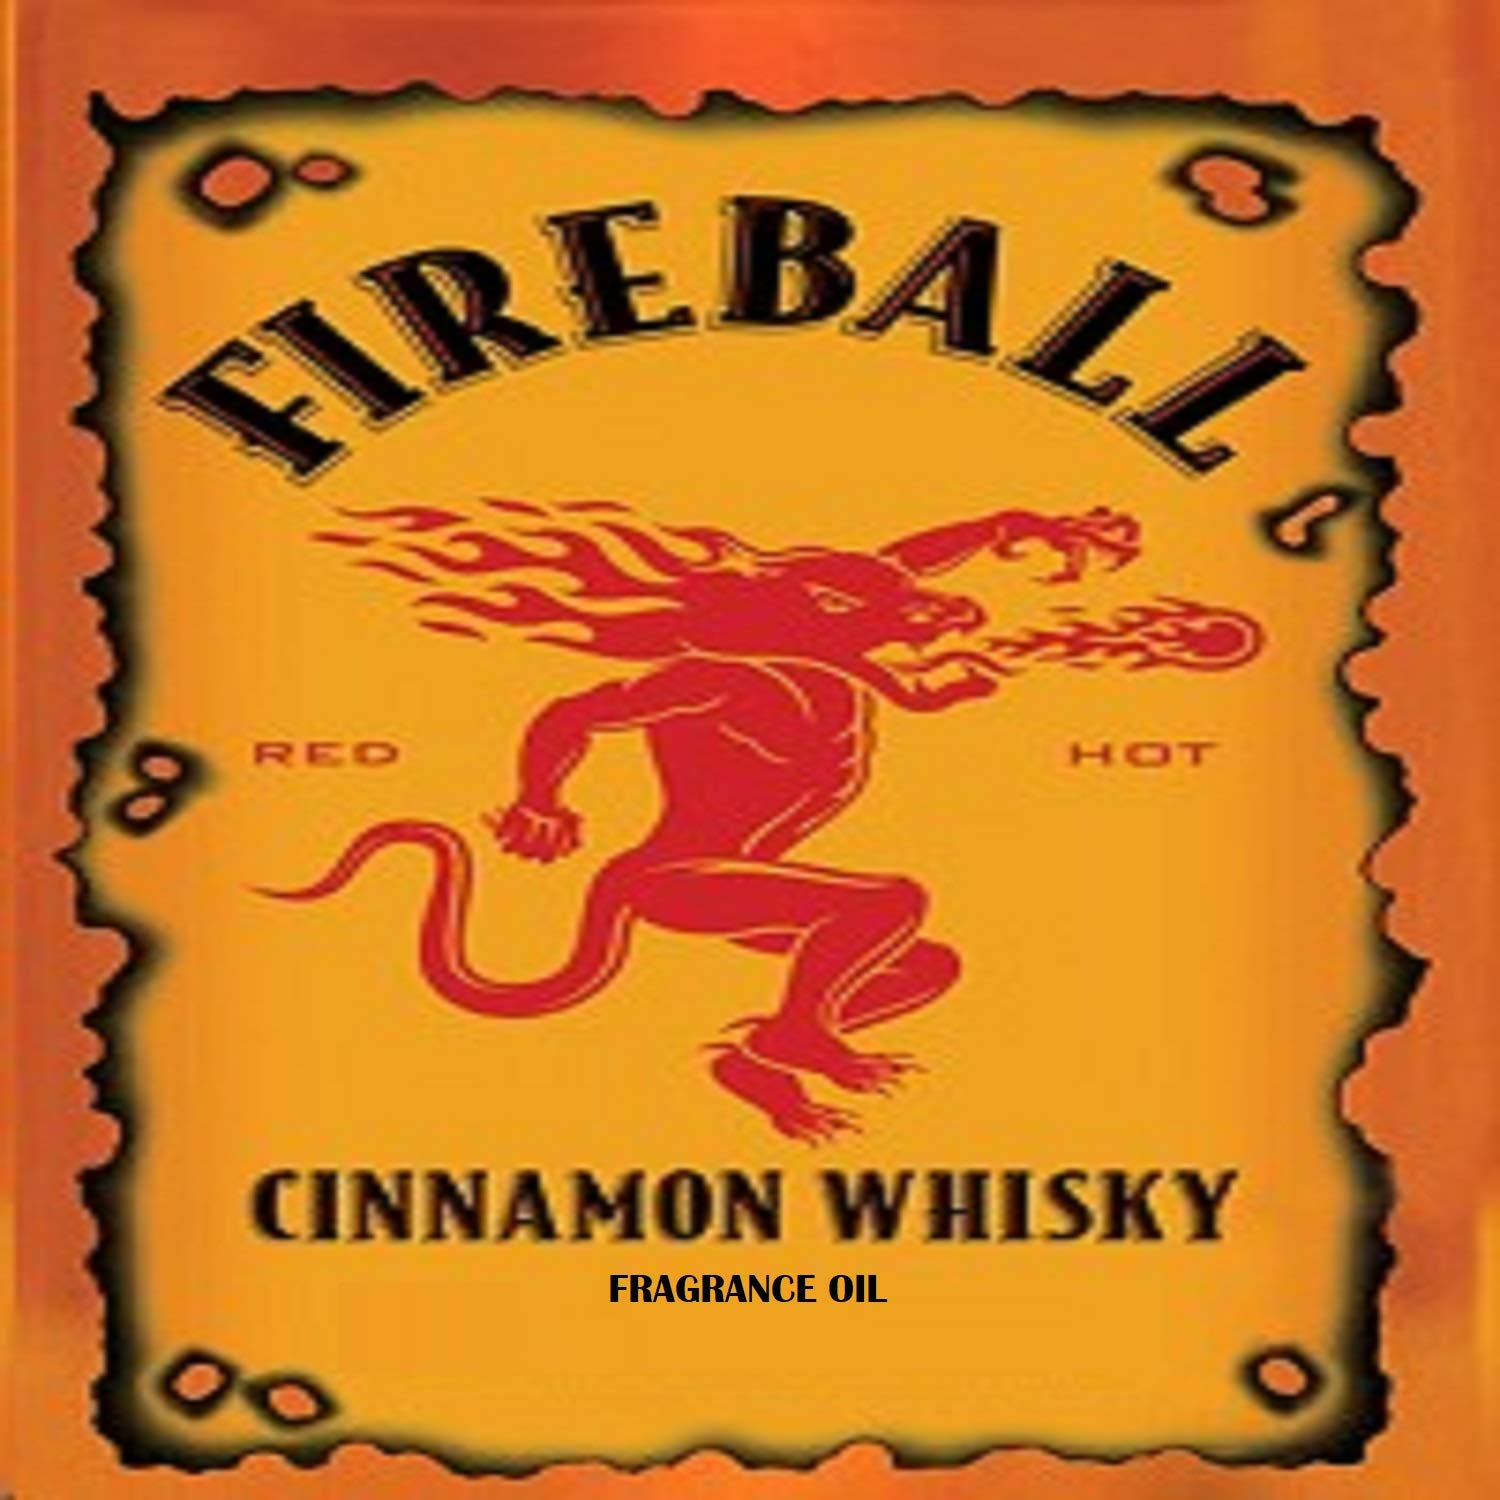 Fireball Whiskey Type Fragrance Oil - 1 oz - for Candle & Soap Making